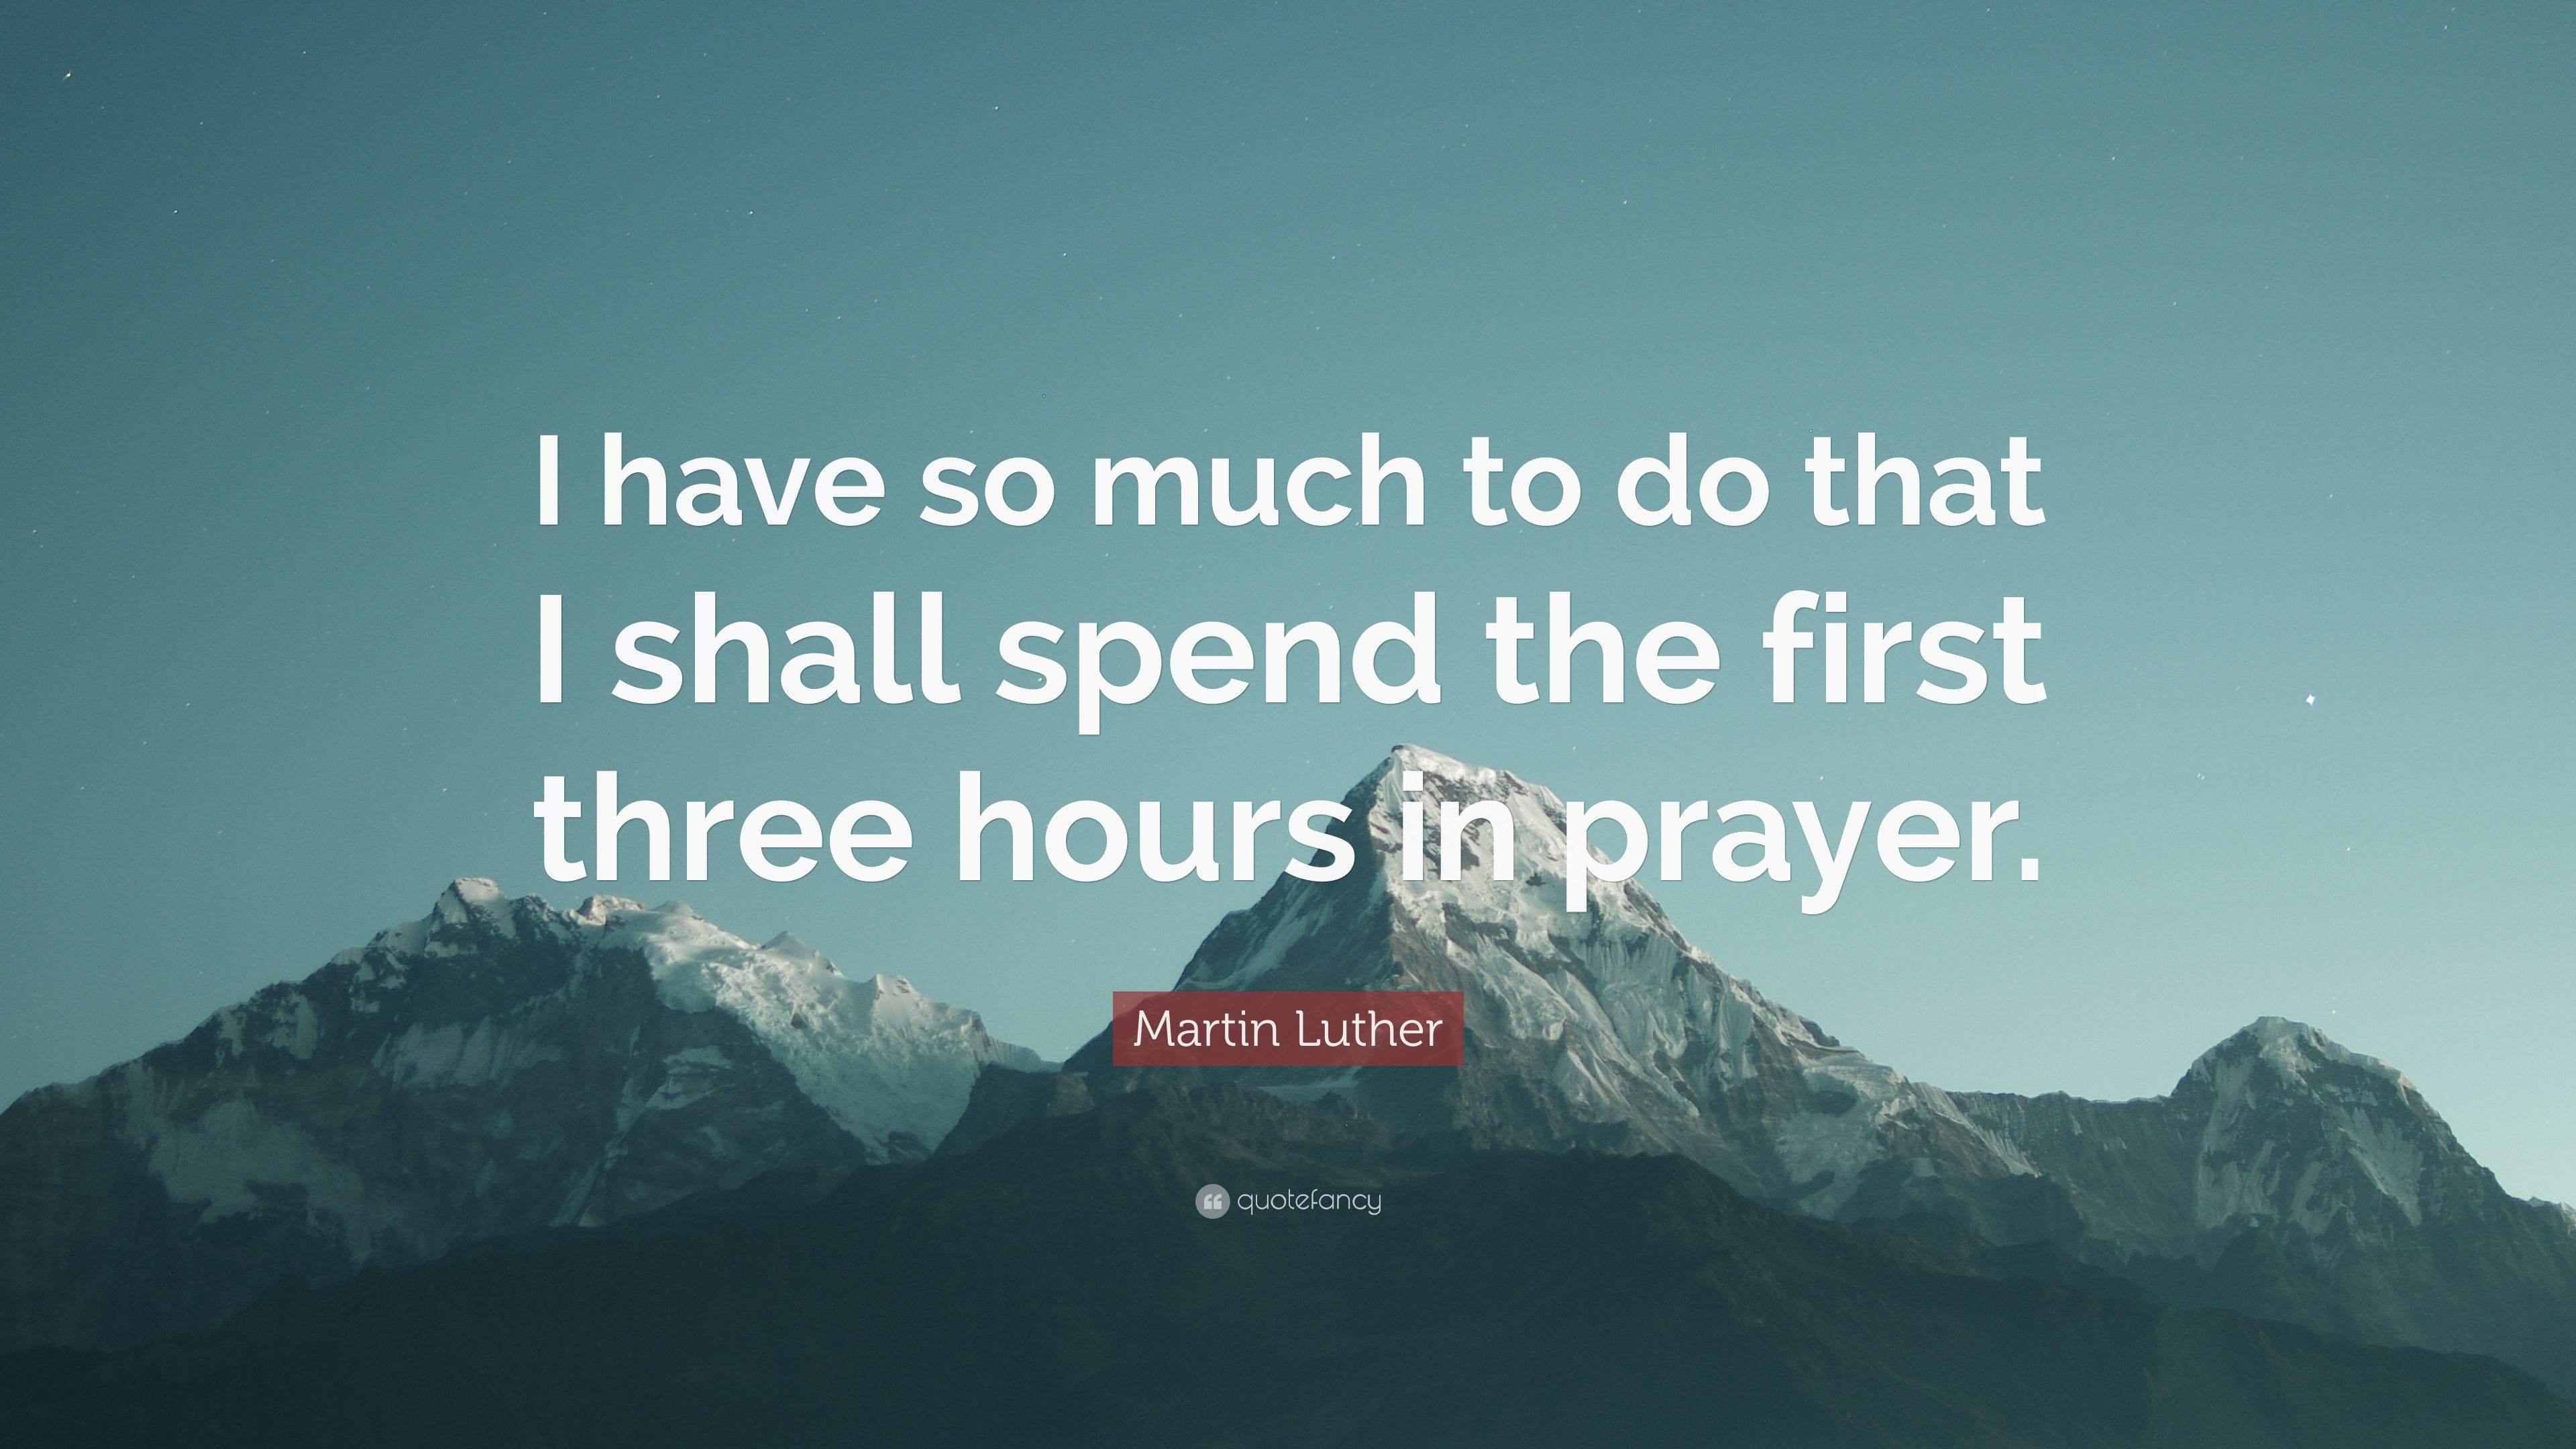 Image result for i have so much to do that i shall spend the first three hours in prayer